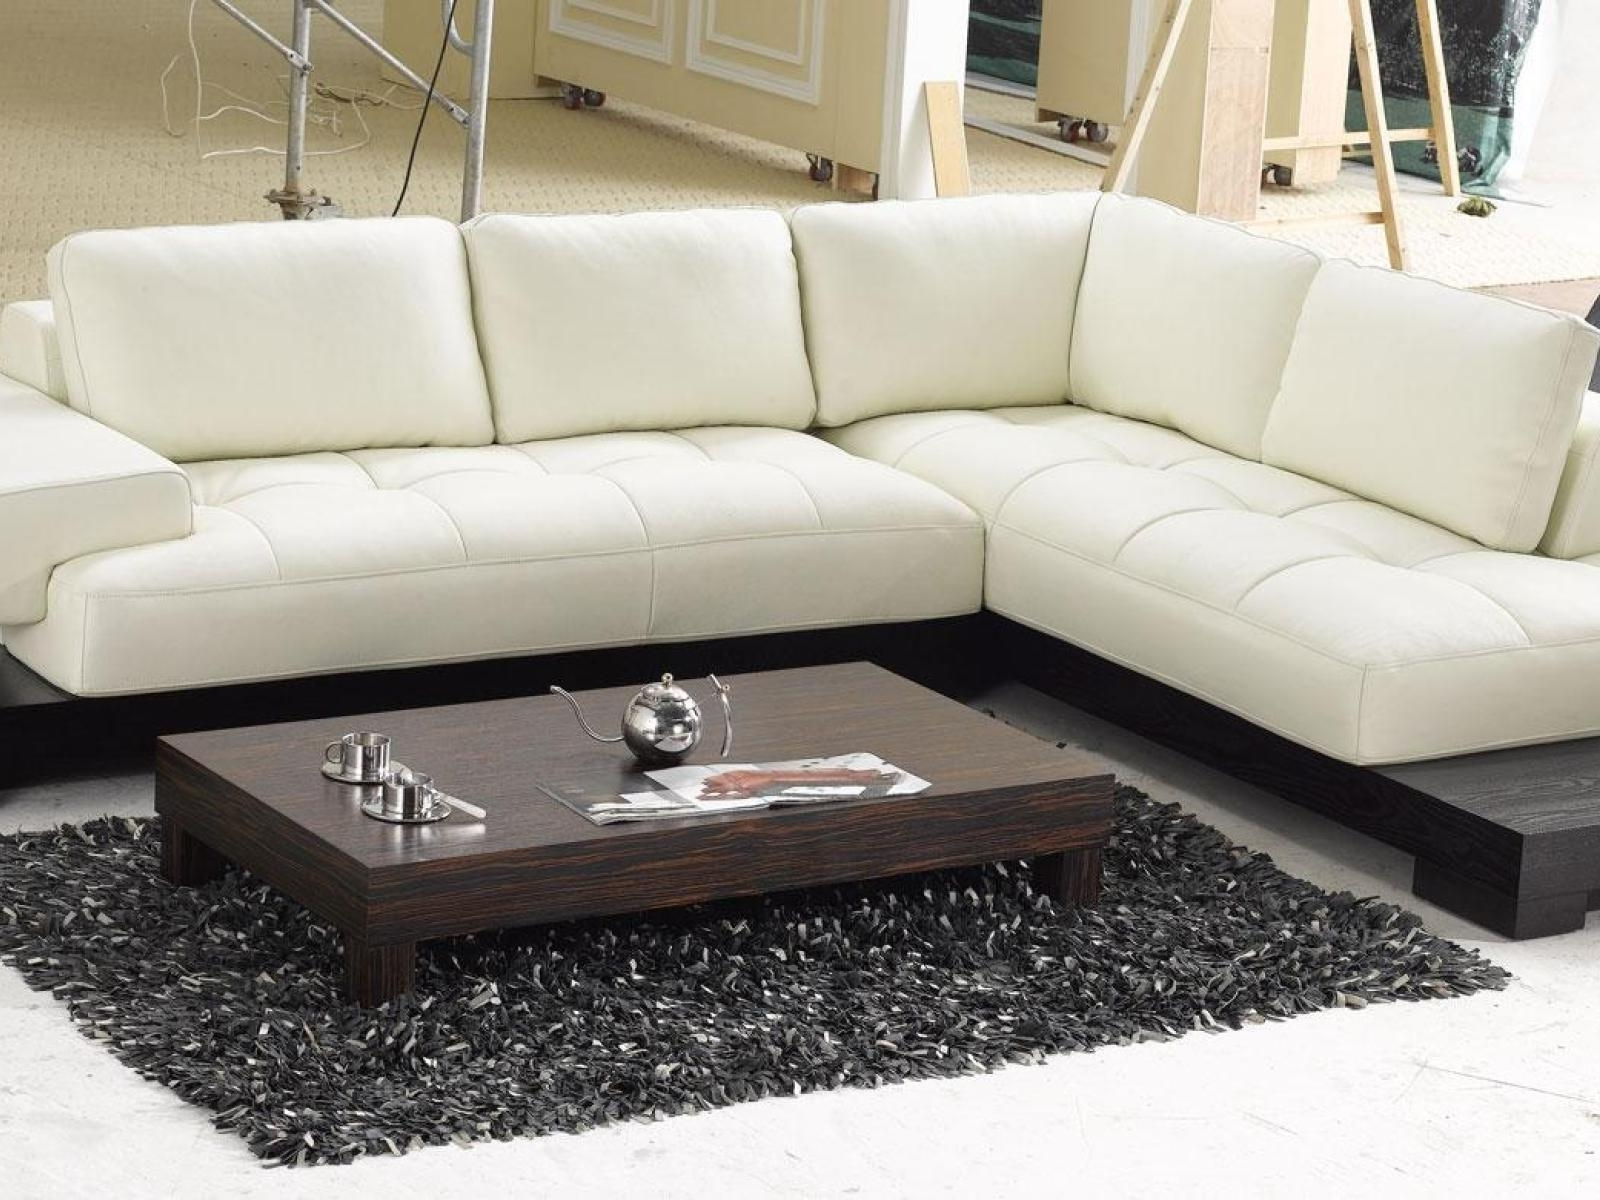 Furniture Awesome Contemporary Leather Couches Modern White Sofas Regarding Well Known High Point Nc Sectional Sofas (View 7 of 20)